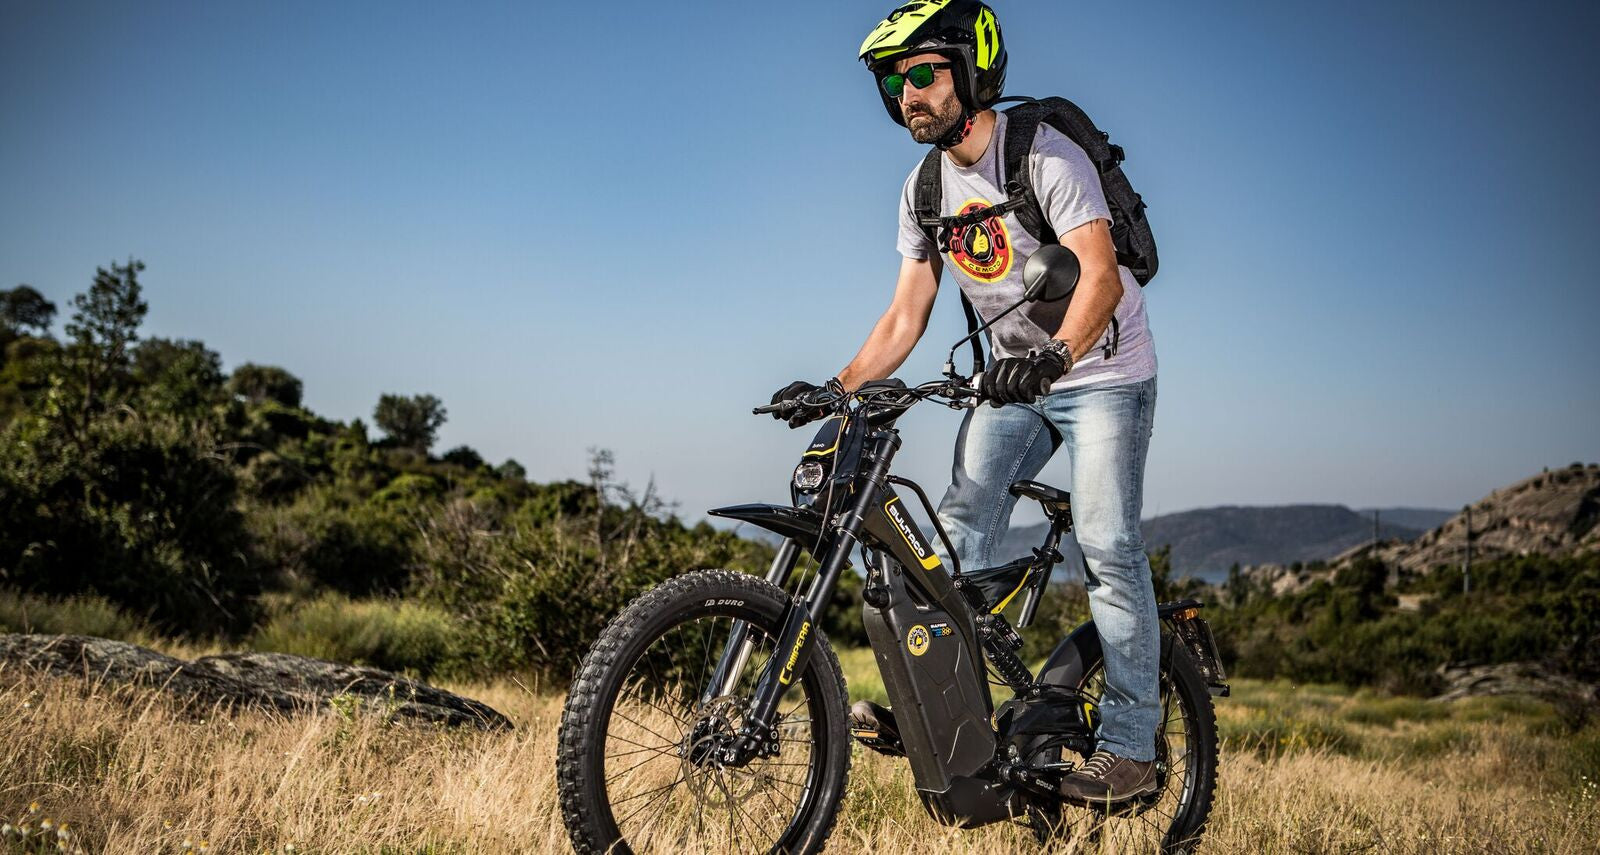 Bultaco Brinco C Restyle Day Time Shoot 4